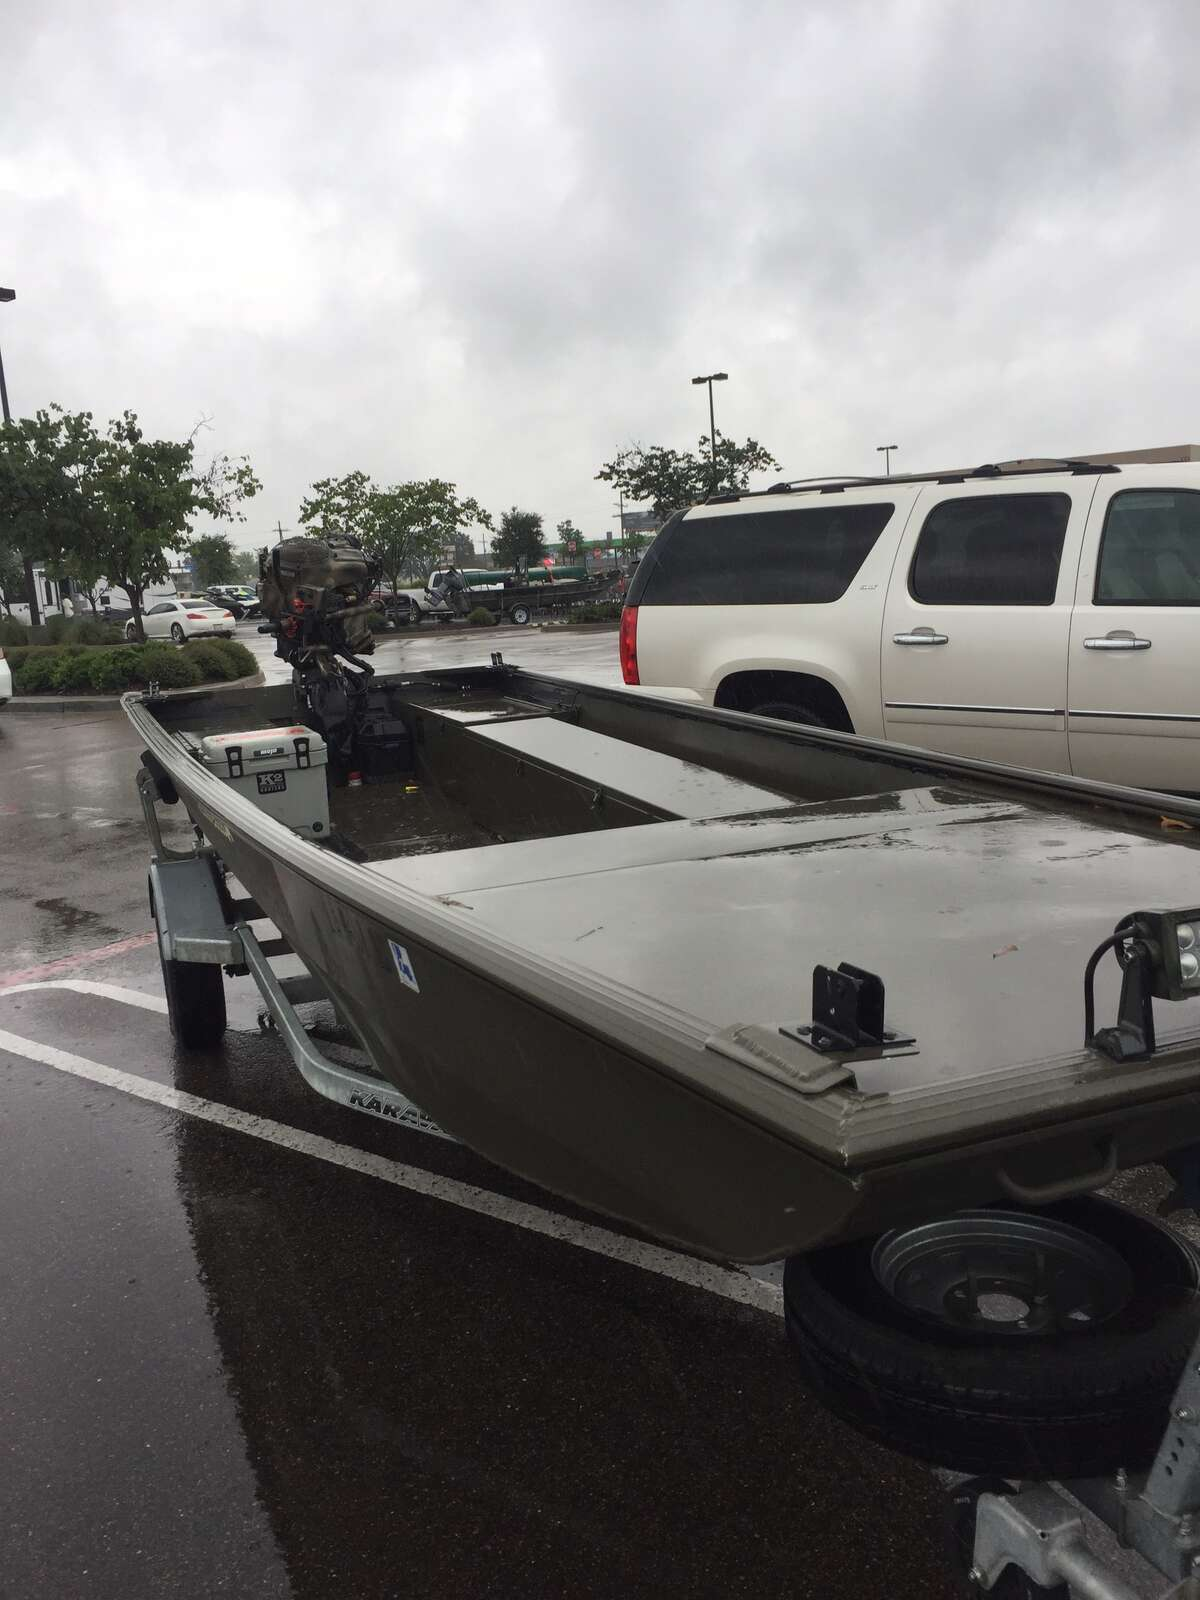 A group of volunteers from Louisiana known as the Cajun Navy have come under attack while trying to assist people in Houston displaced by Tropical Storm Harvey.